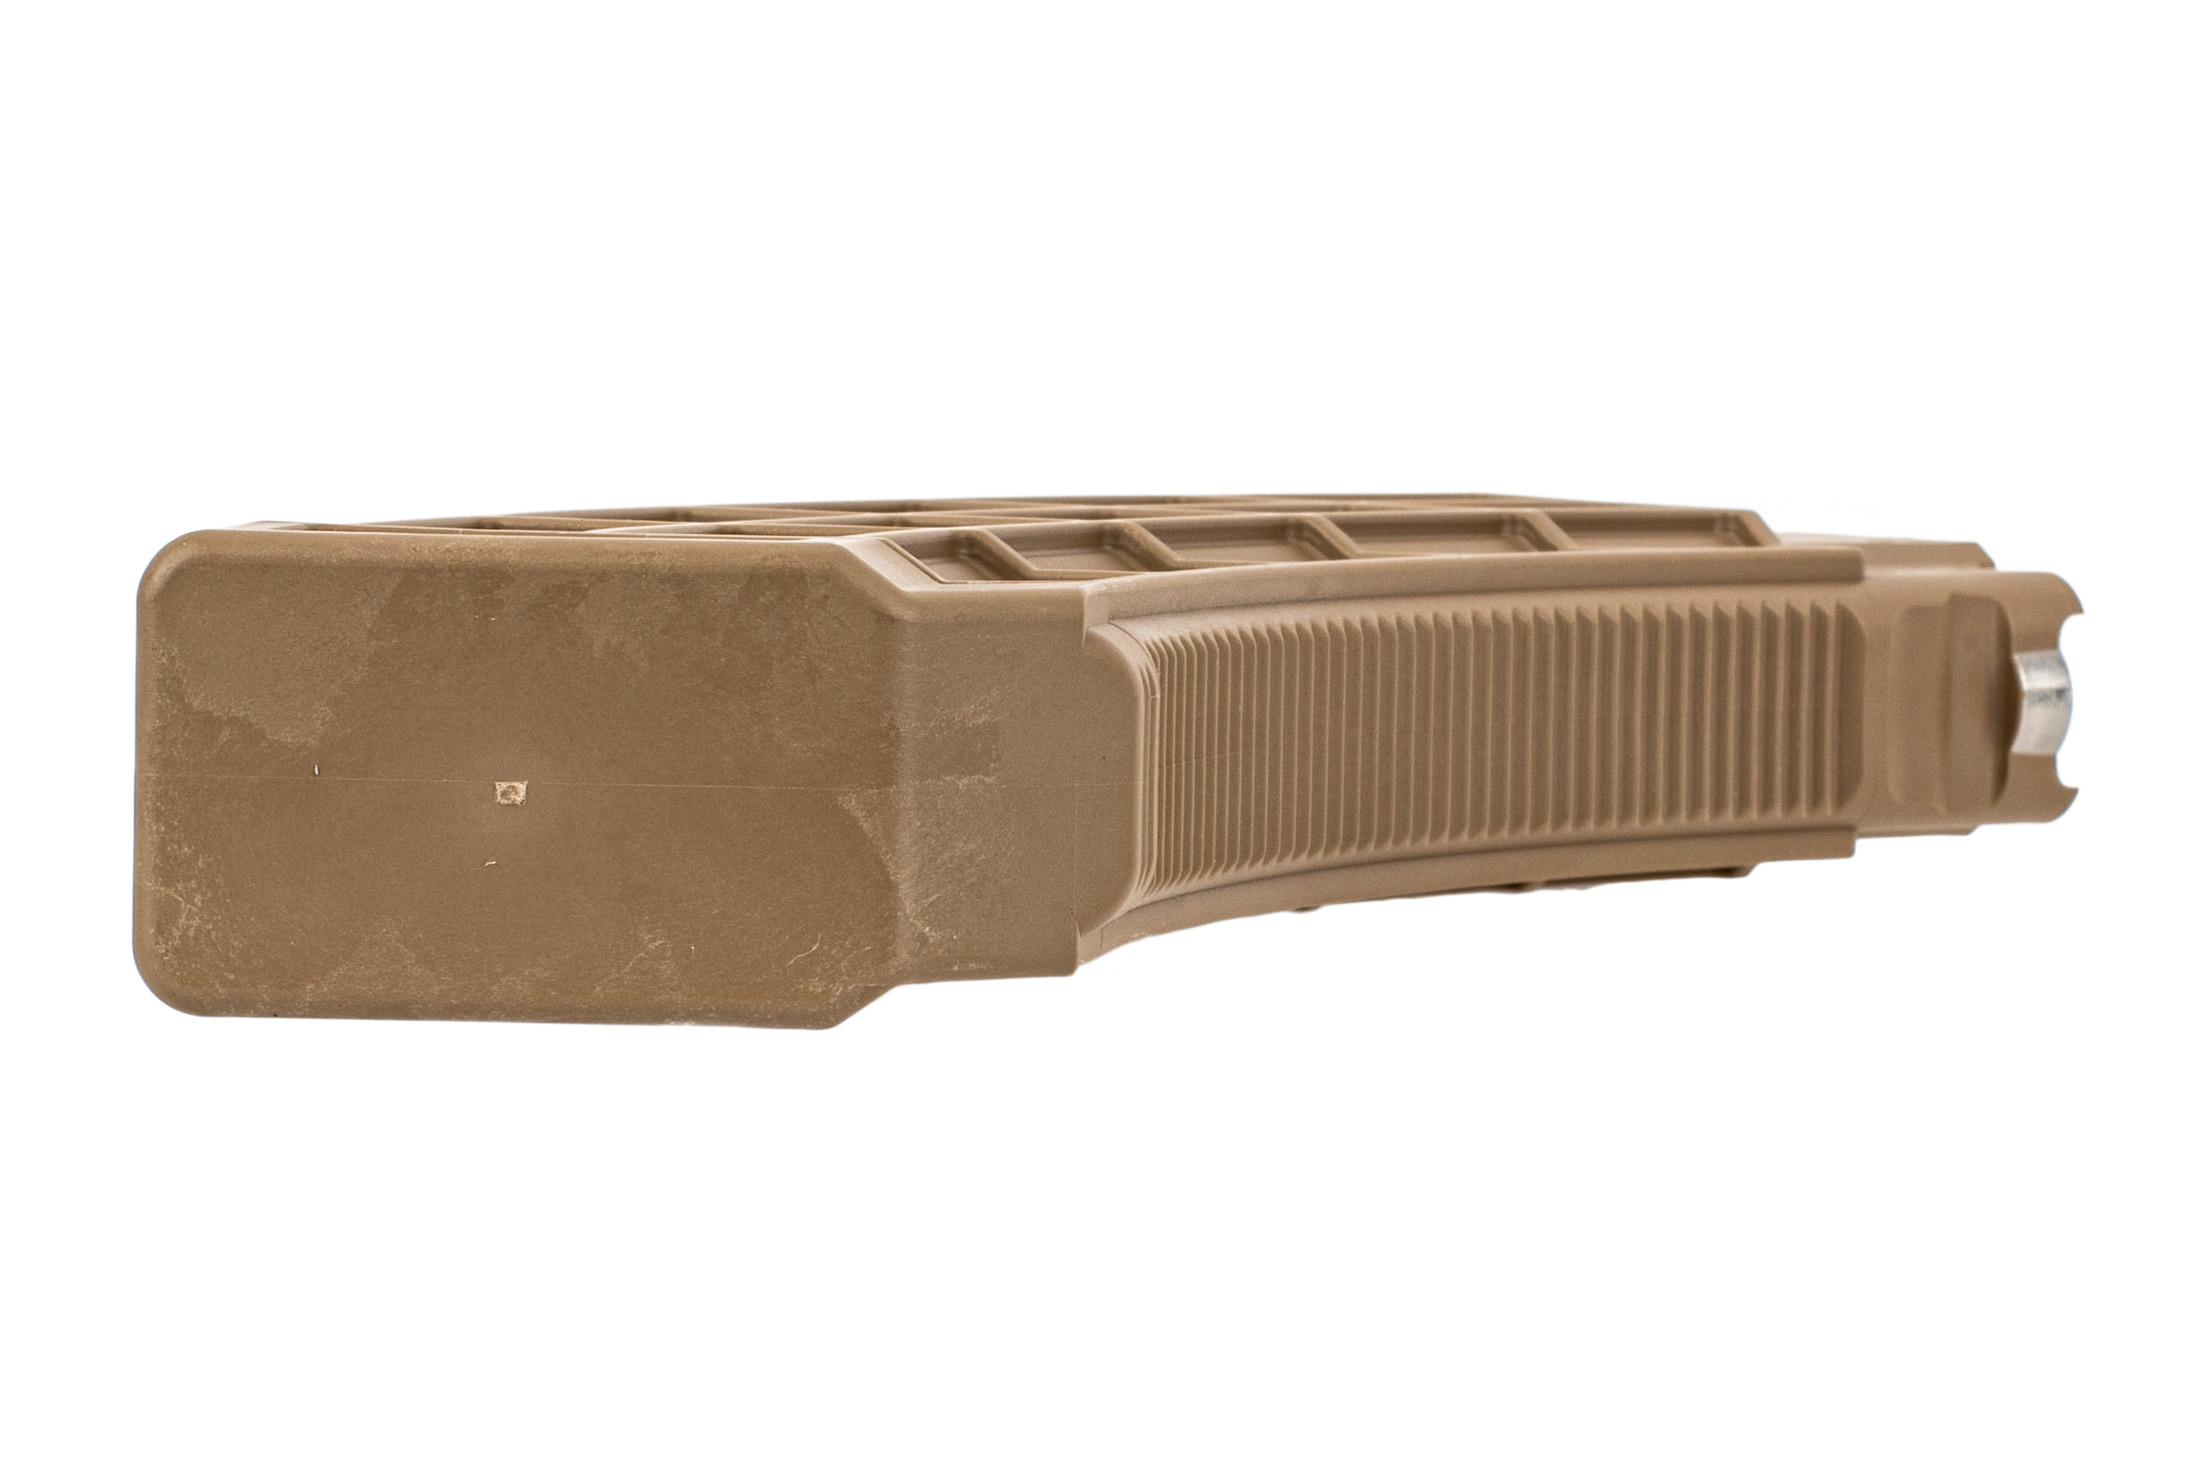 US Palm AK 47 30 round magazine FDE is heavily textured for better grip